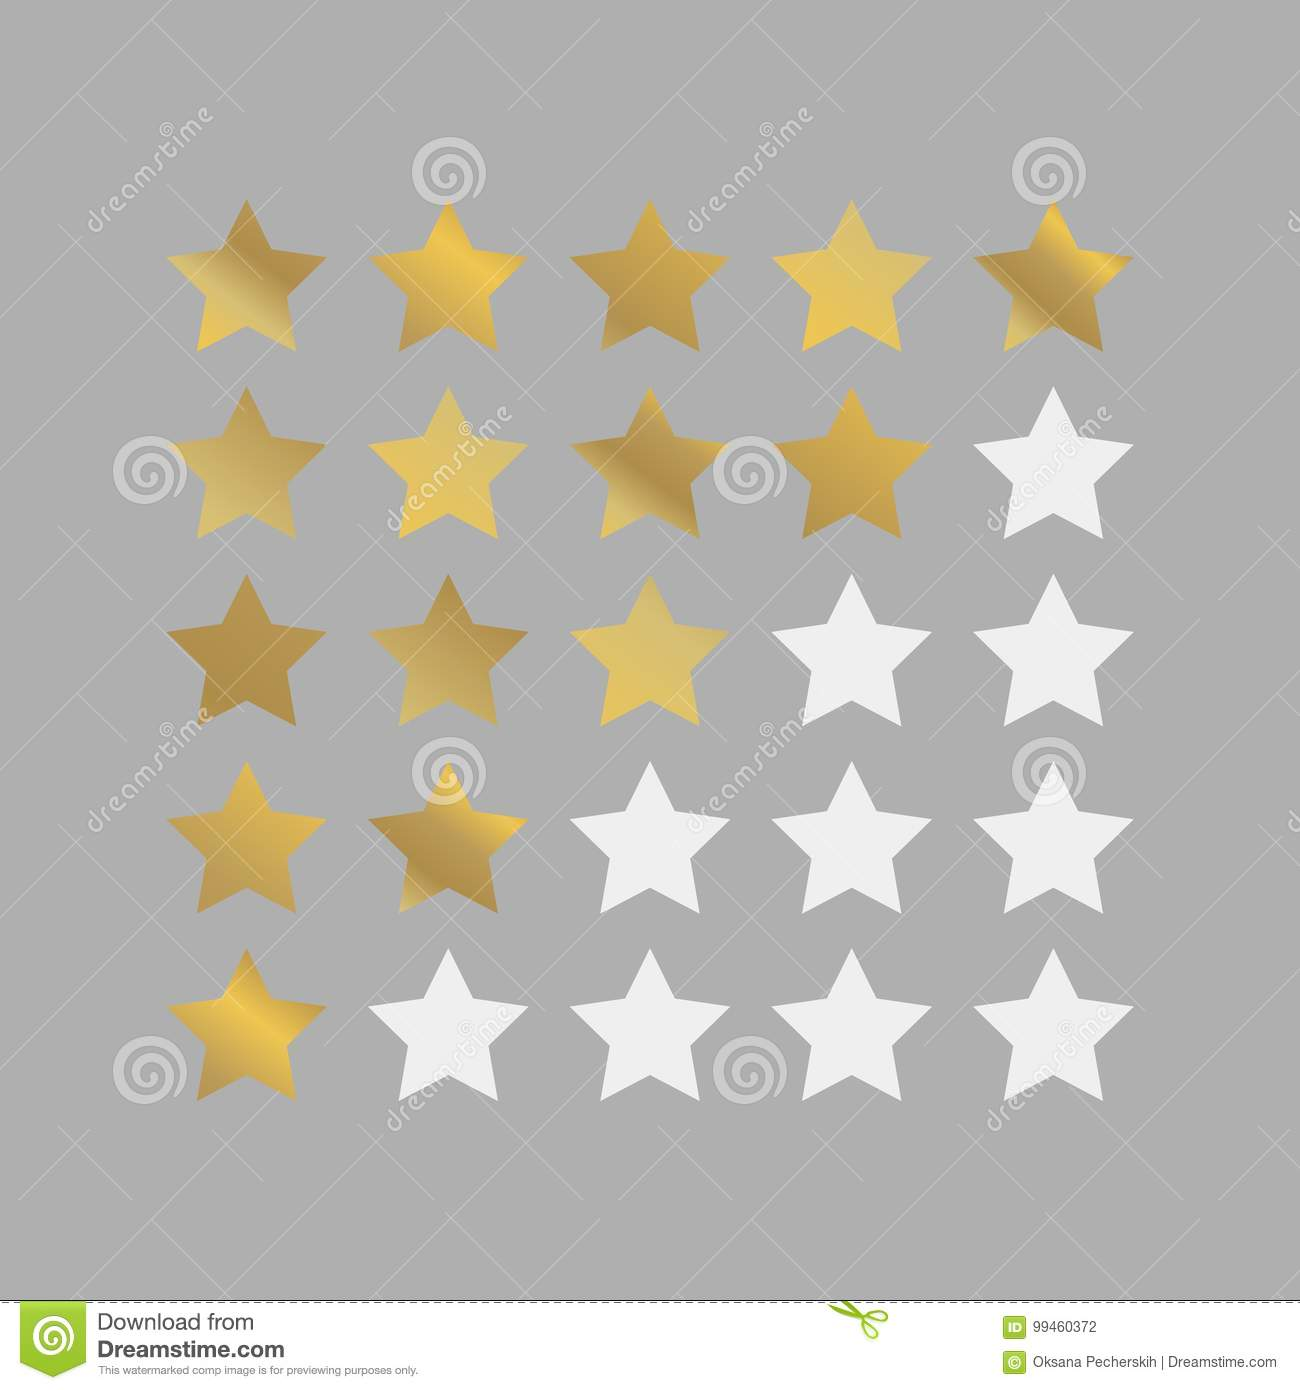 Vector Image Of 5 Star Rating. Gold Stars Vector Icon